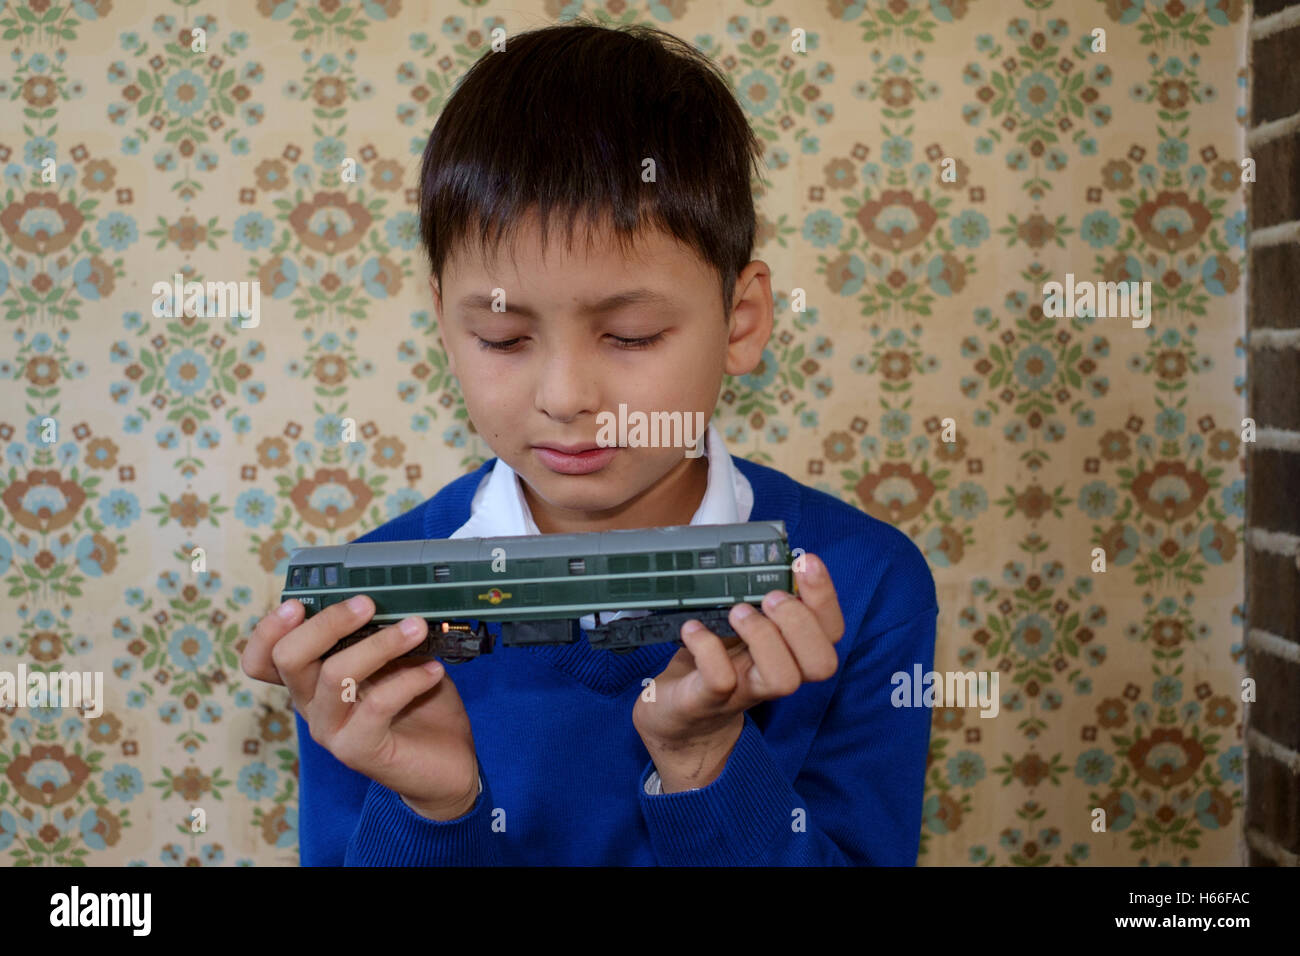 young boy playing with electric train set in a 1970s setting england uk Stock Photo